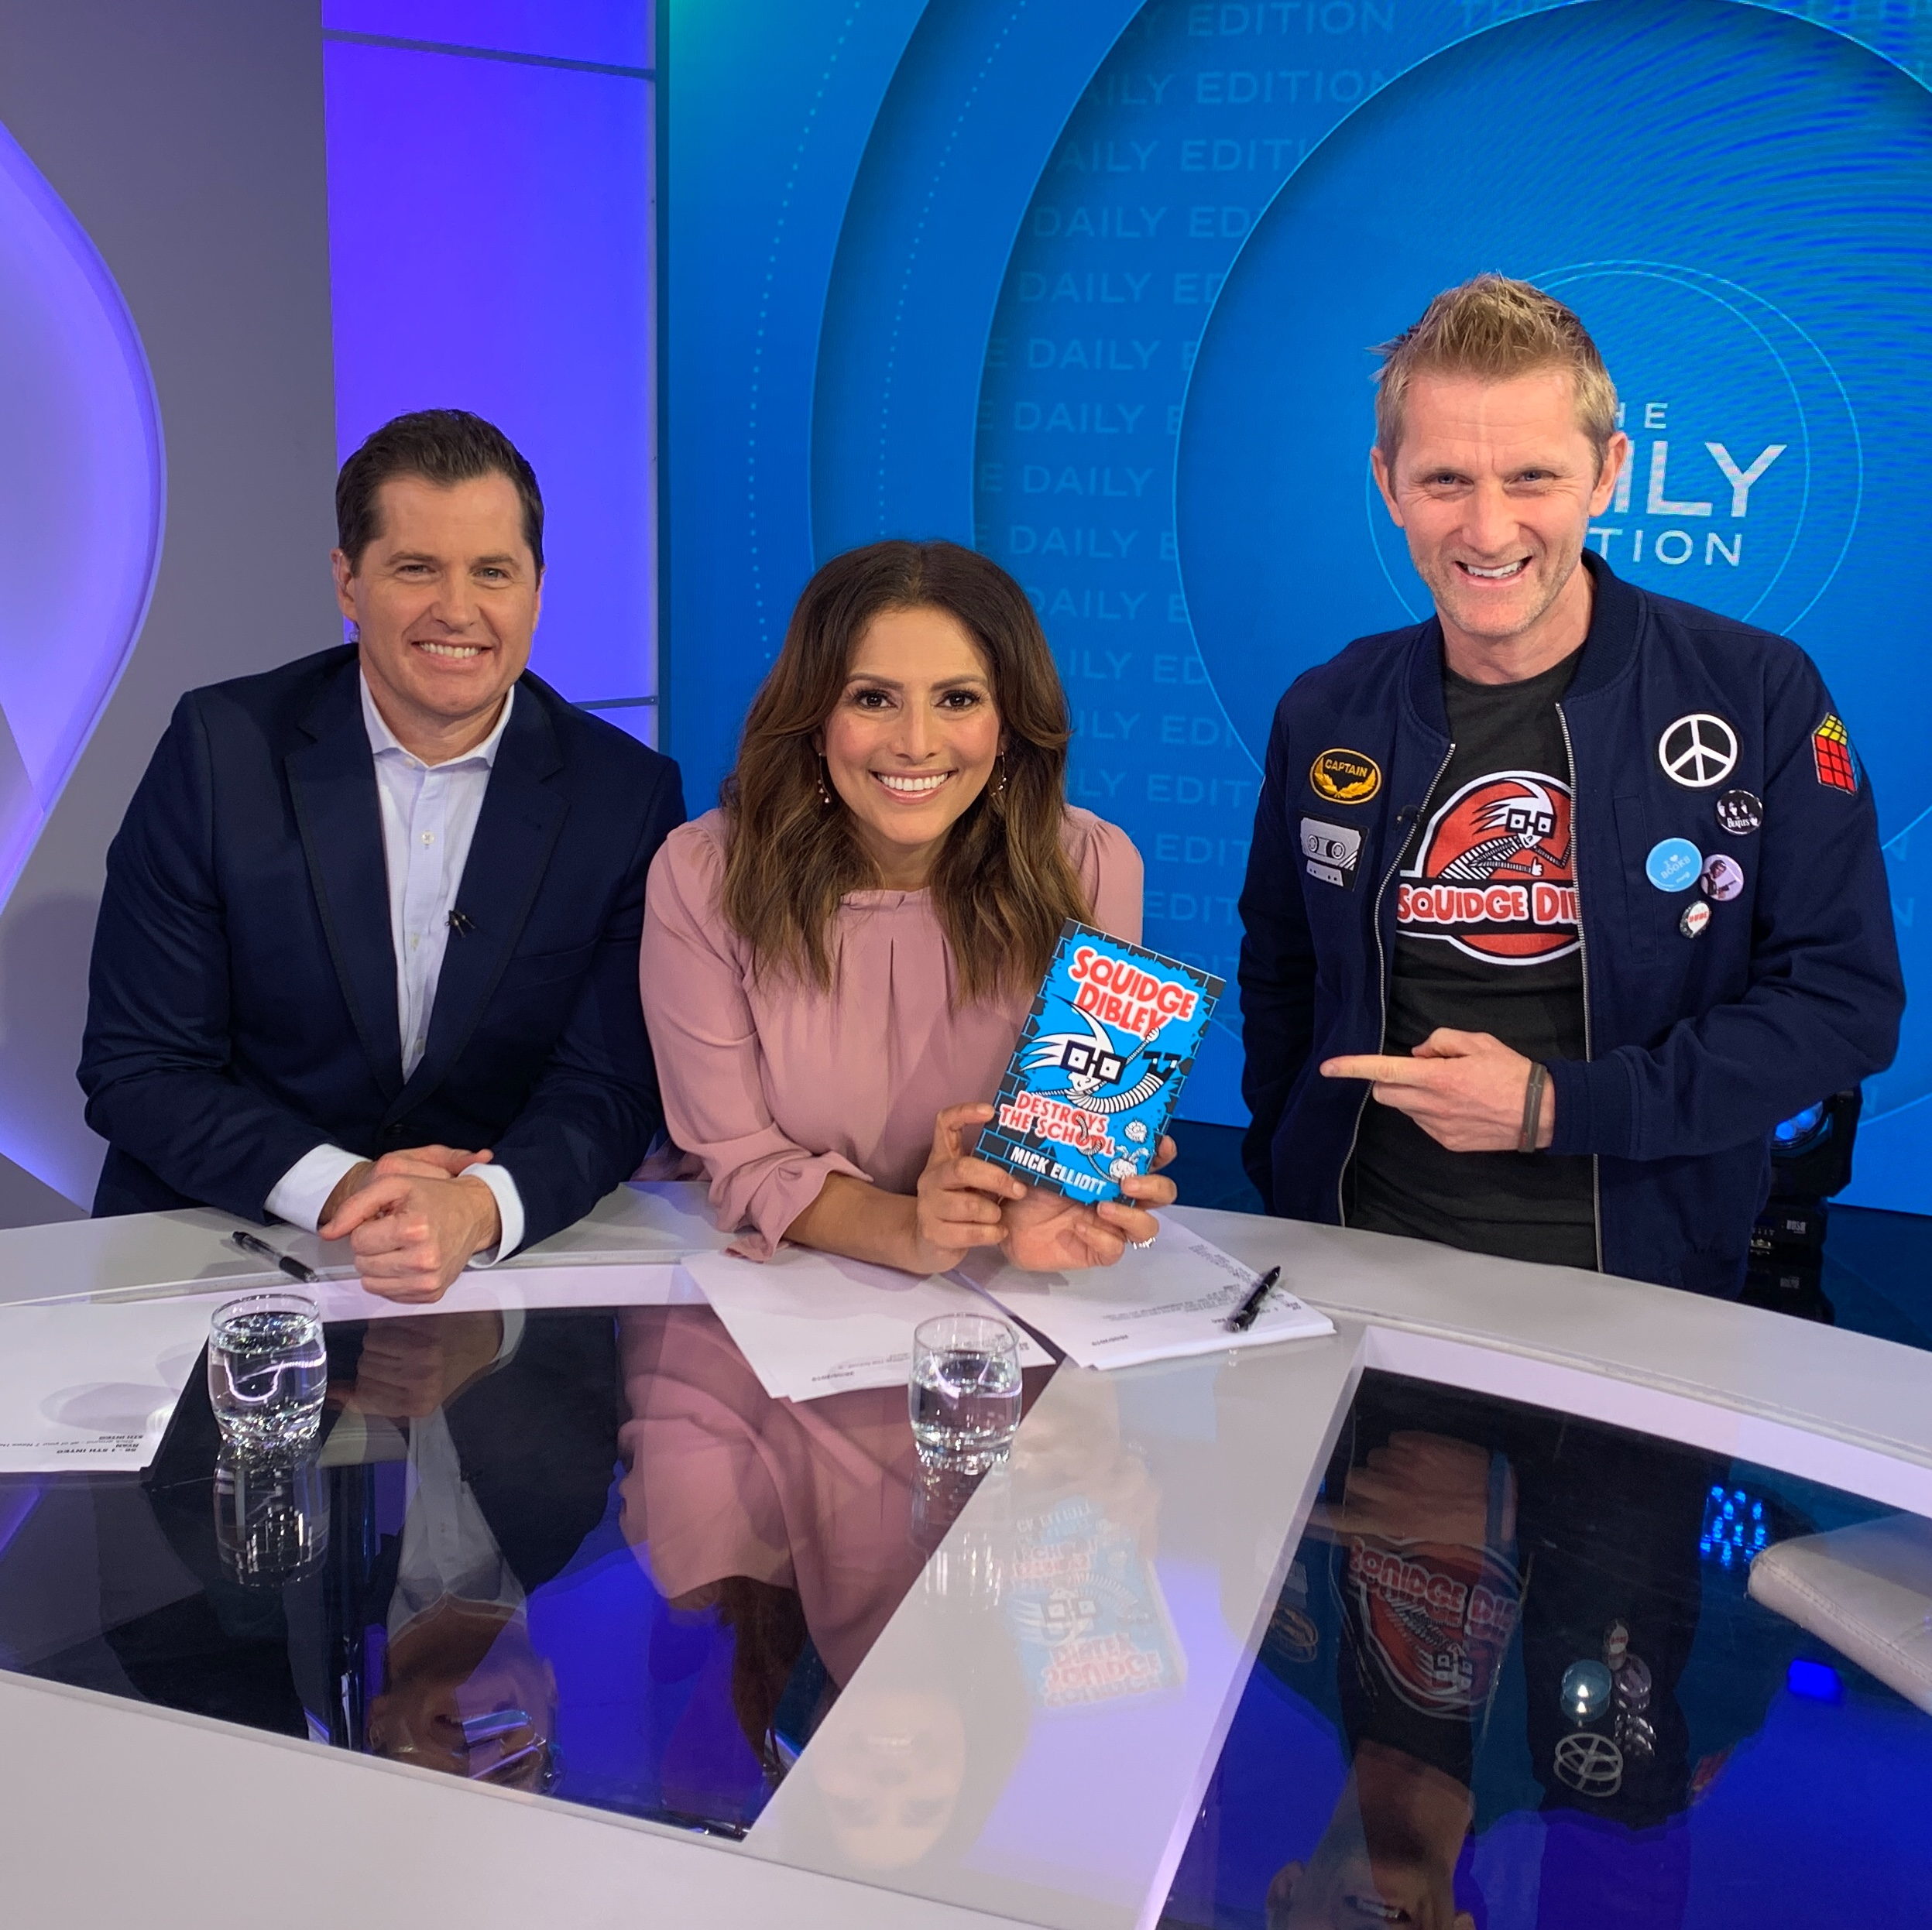 Mick on set on THE DAILY SHOW on channel 7 chatting about SQUIDGE DIBLEY DESTROYS THE SCHOOL.